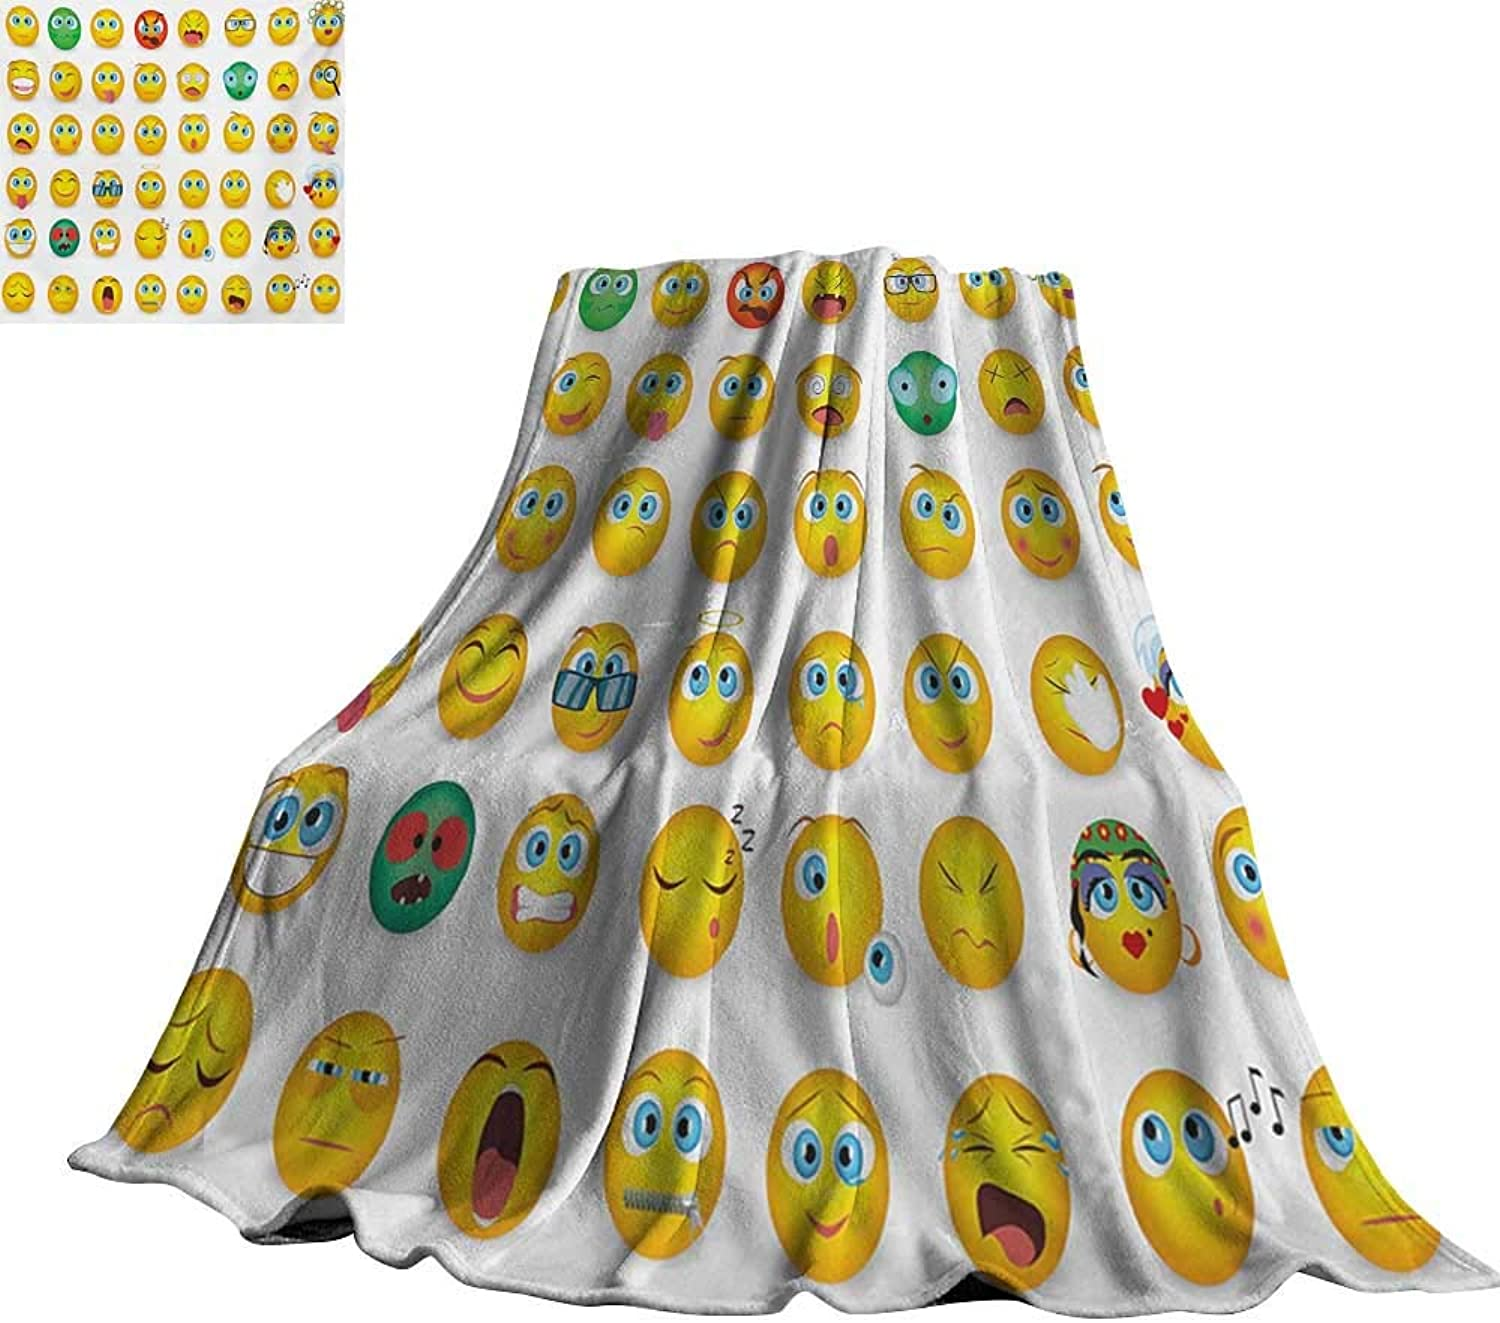 RenteriaDecor Emoji,Fashion Warm All Season Blanket Cartoon Like Smiley Faces of Mosters Girls Couple Happy Sad Angry Furious Moods Print for Couch Bed Living Room 60 x50